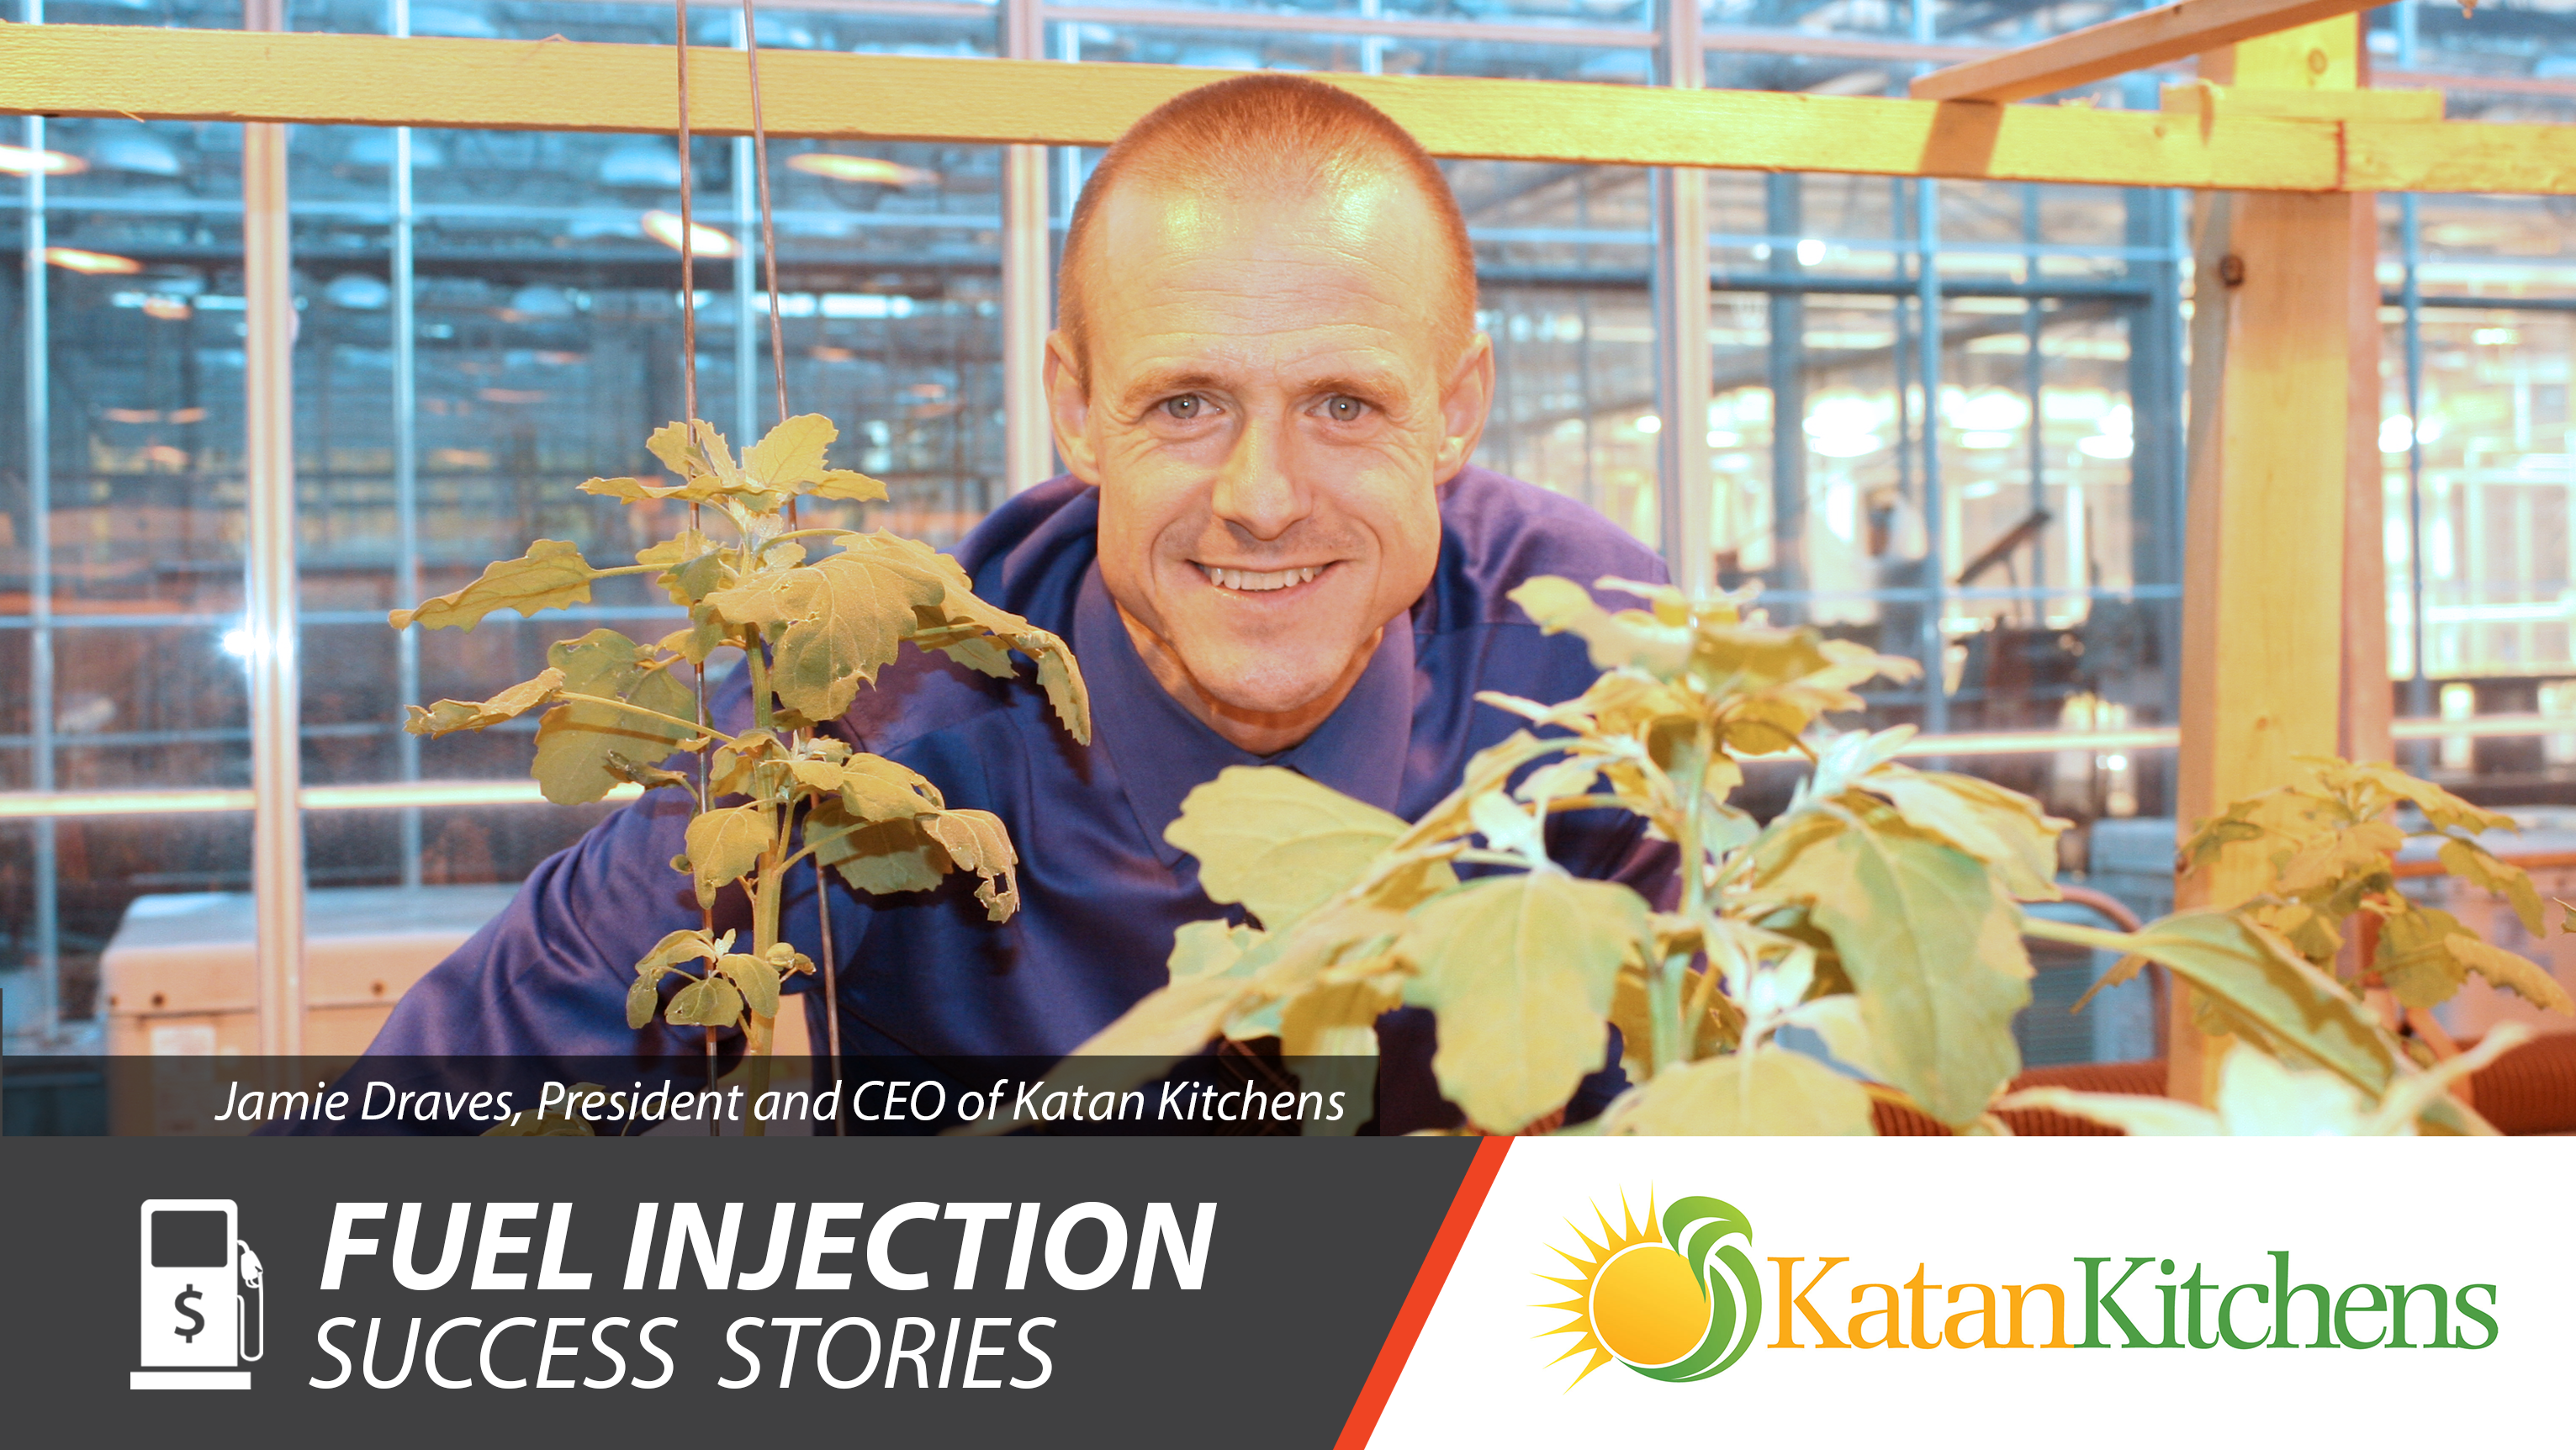 Fuel Injection Success Stories: Katan Kitchens